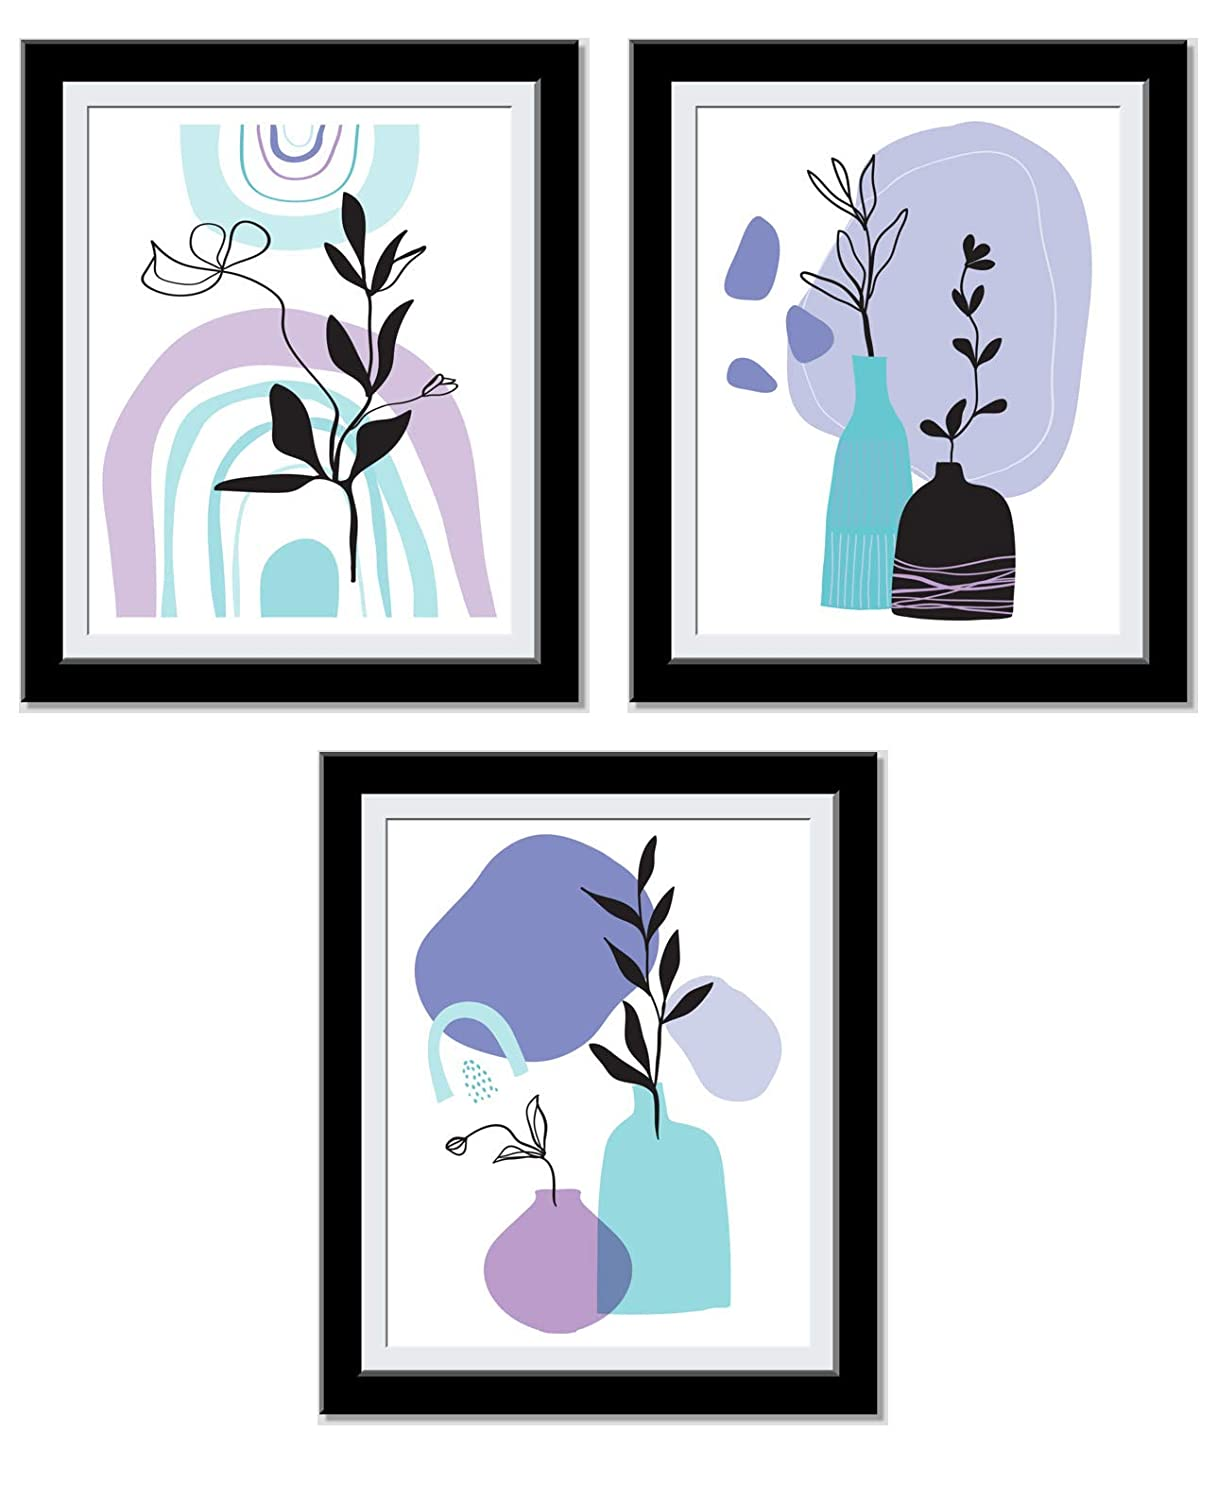 Boho Wall Decor - Posters For Room Aesthetic - Abstract Art - Chic Minimalist Decor - Cute, Trendy Art Prints - House warming, Anniversary Gifts For Her - 8X10 Unframed…